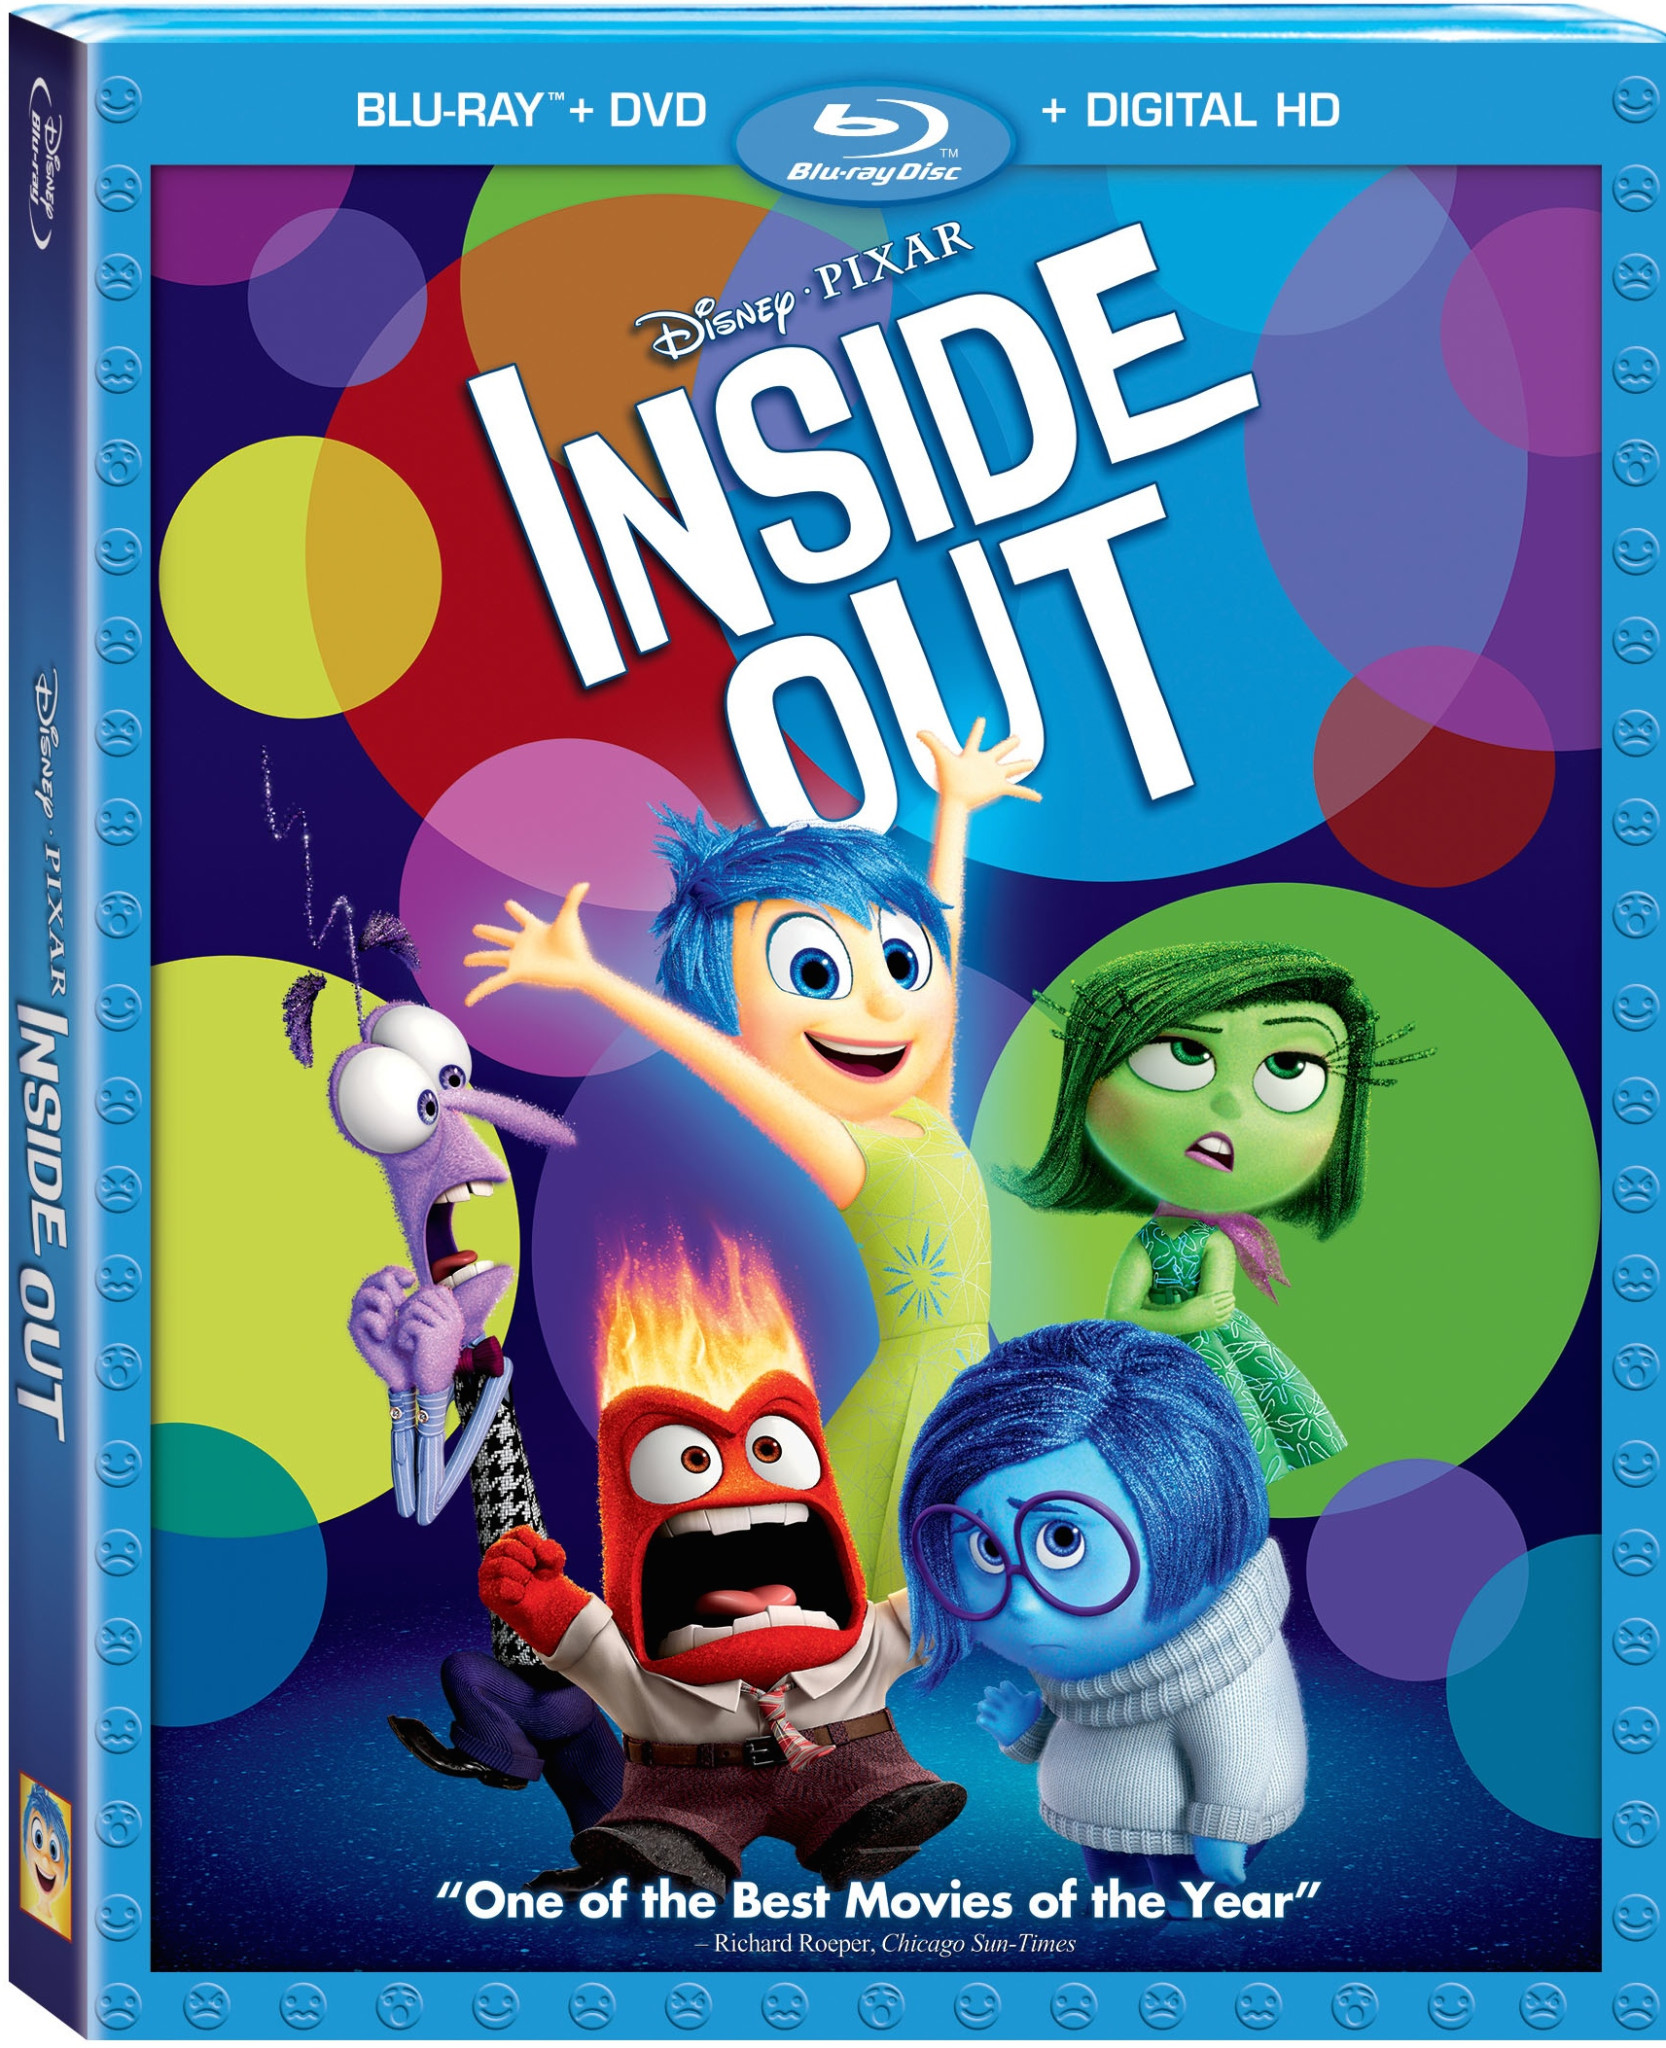 Disney Pixar's Inside Out Now Available